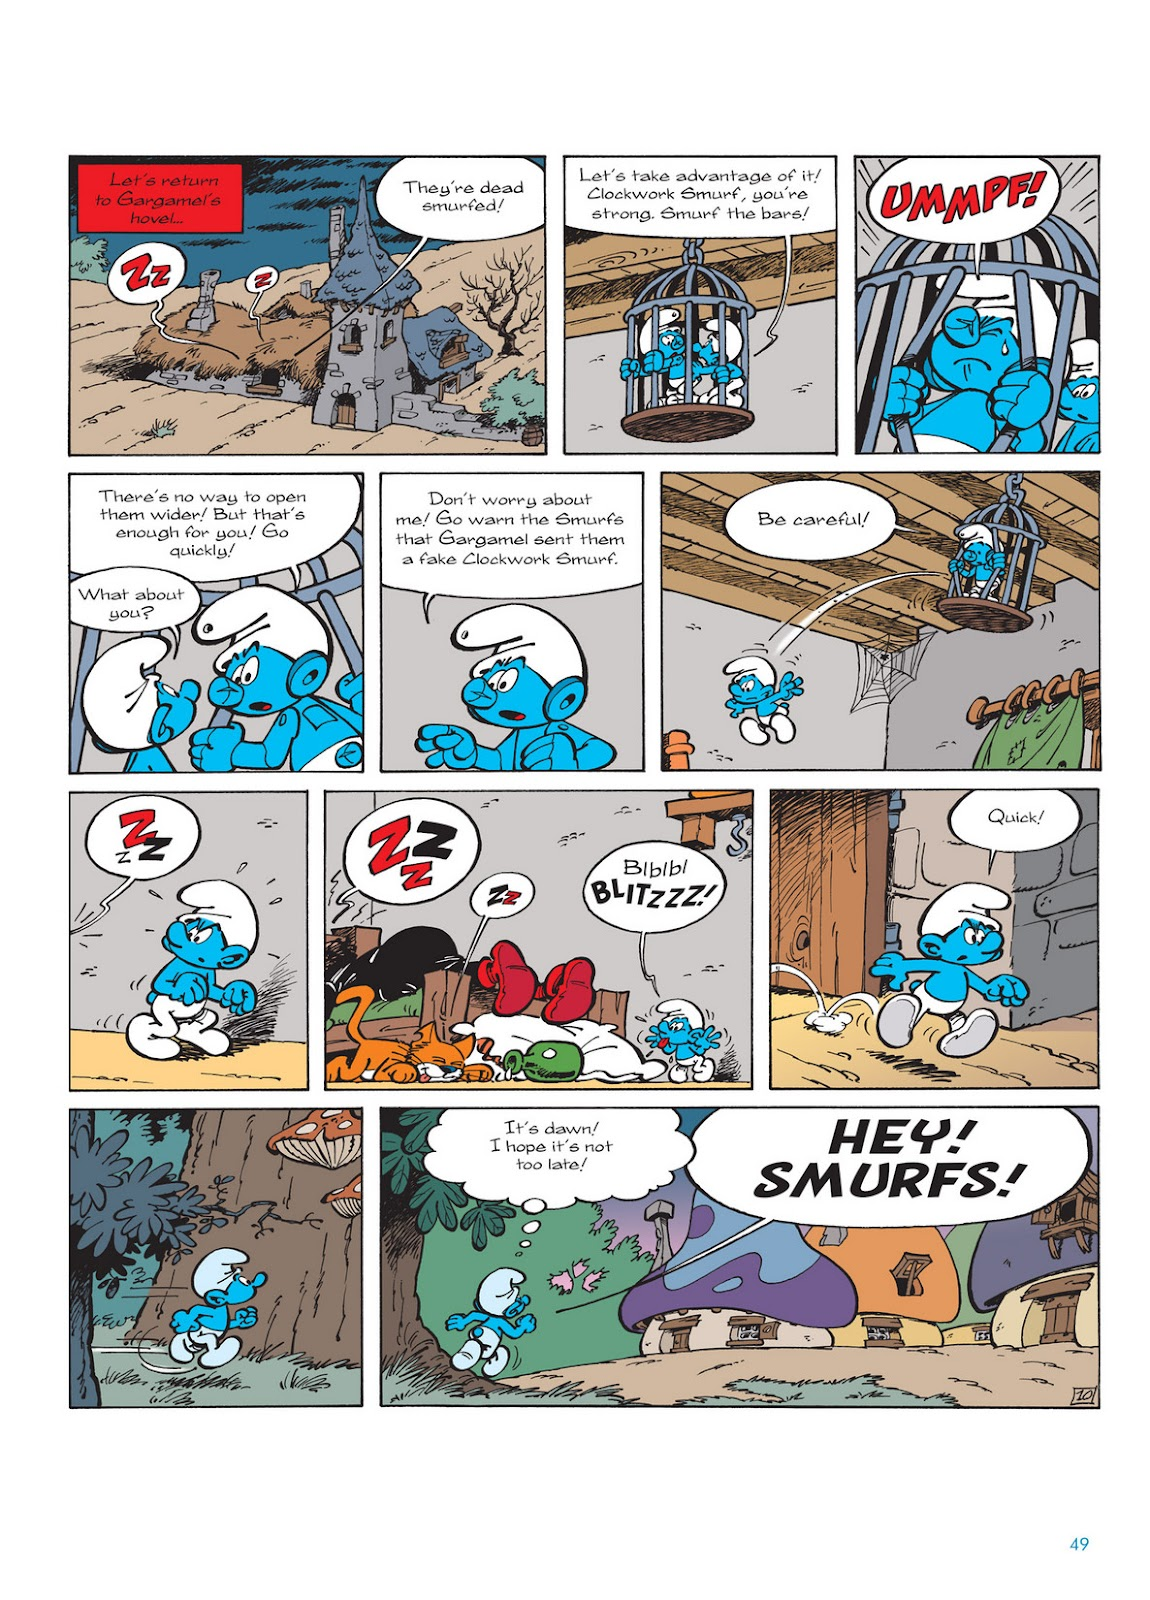 Read online The Smurfs comic -  Issue #13 - 49